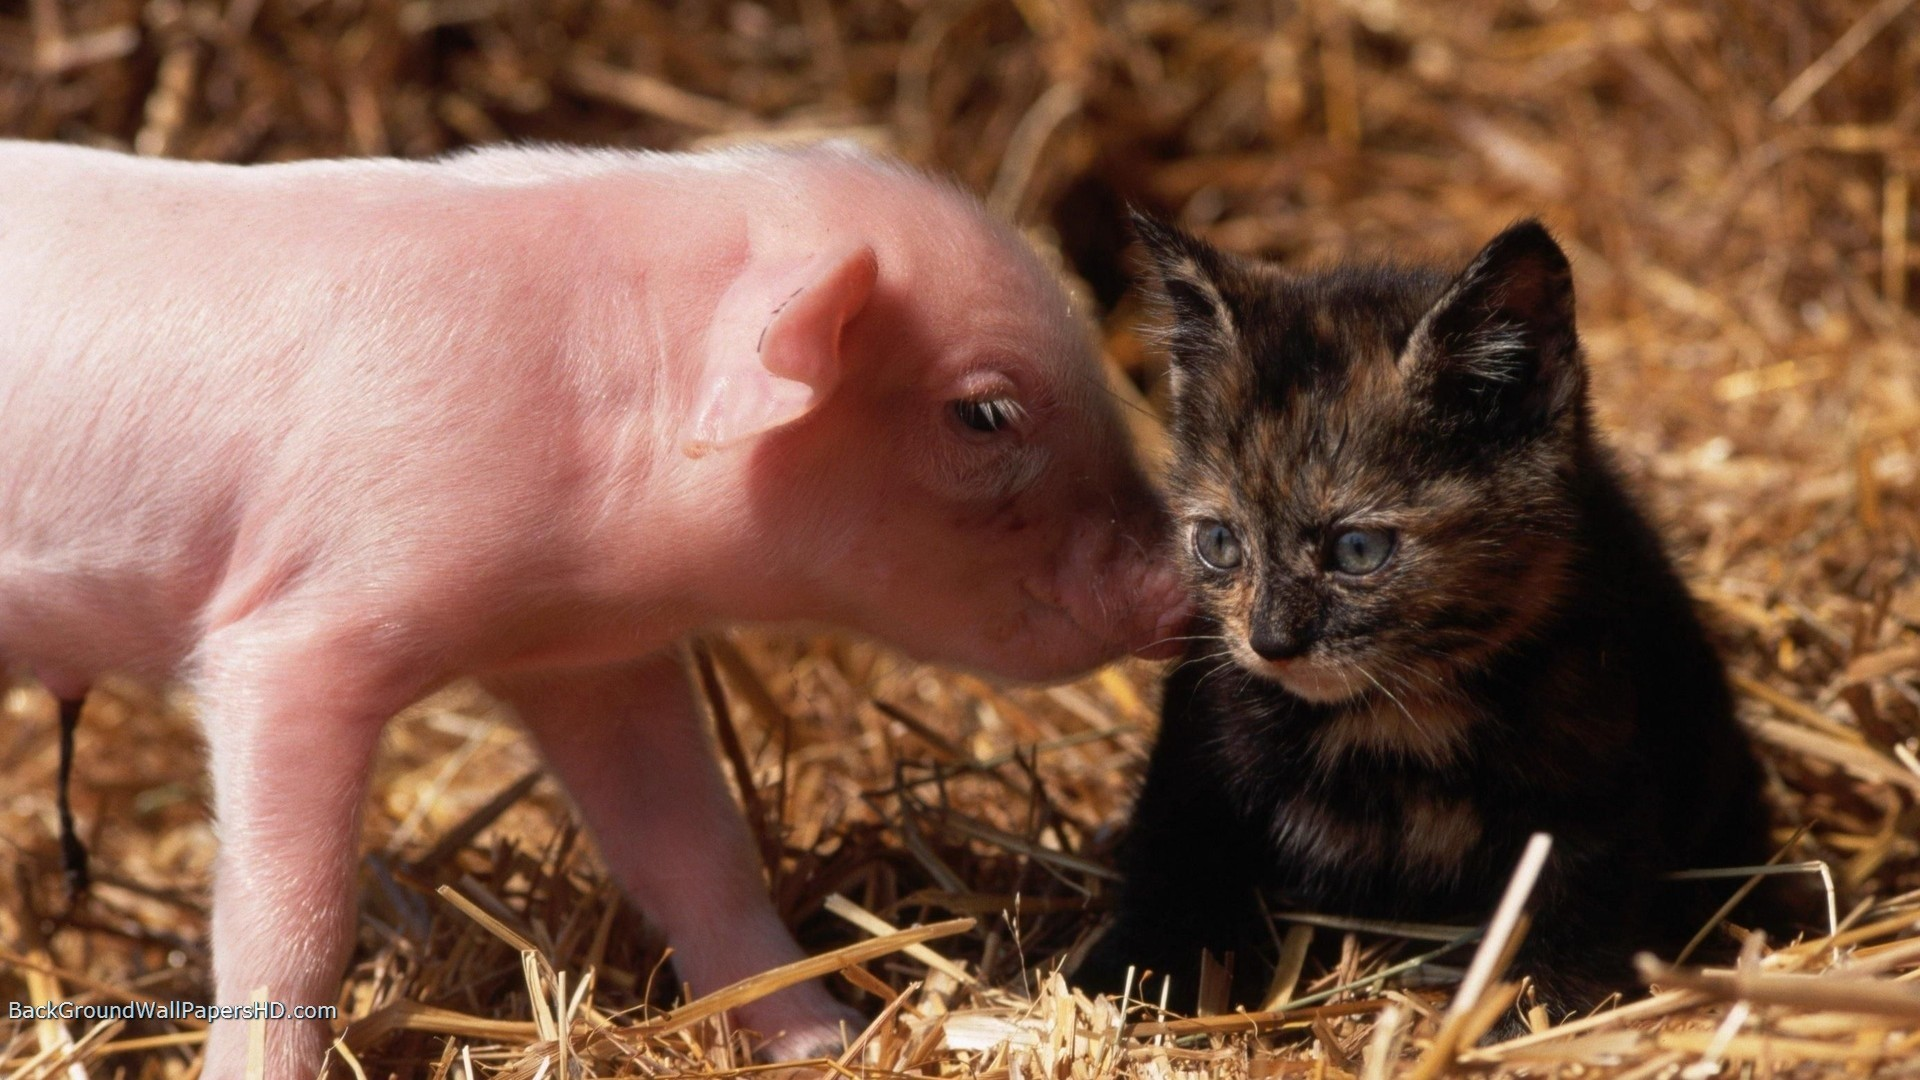 Res: 1920x1080, baby cat and baby pig Baby Cat And Baby Pig Wallpaper HD